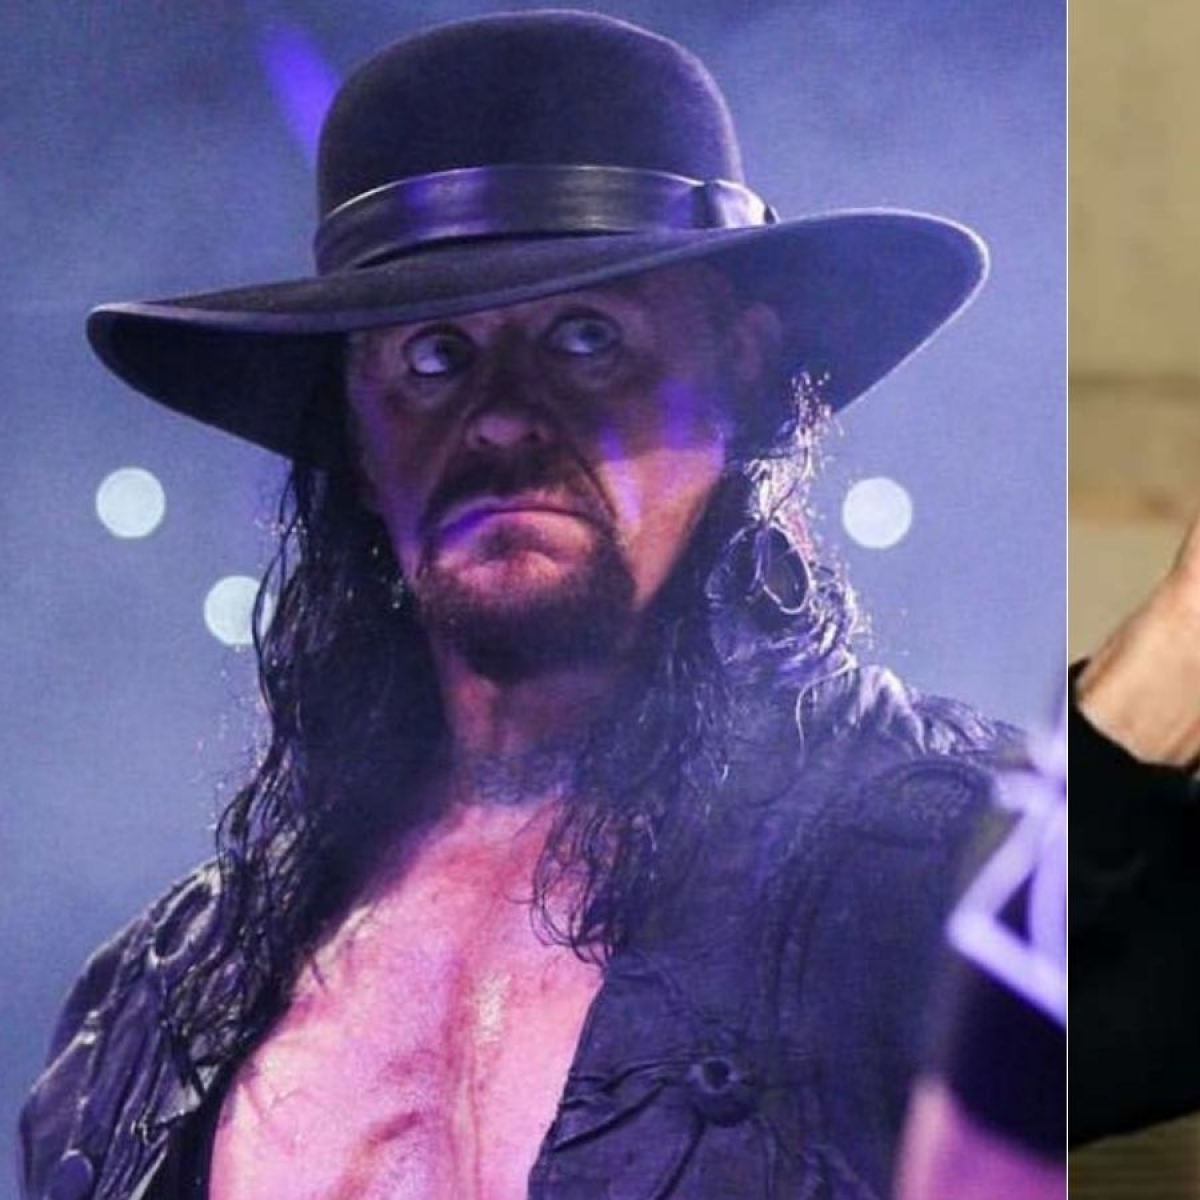 WWE icon The Undertaker challenges Akshay Kumar for a 'real rematch', check out the actor's hilarious reply